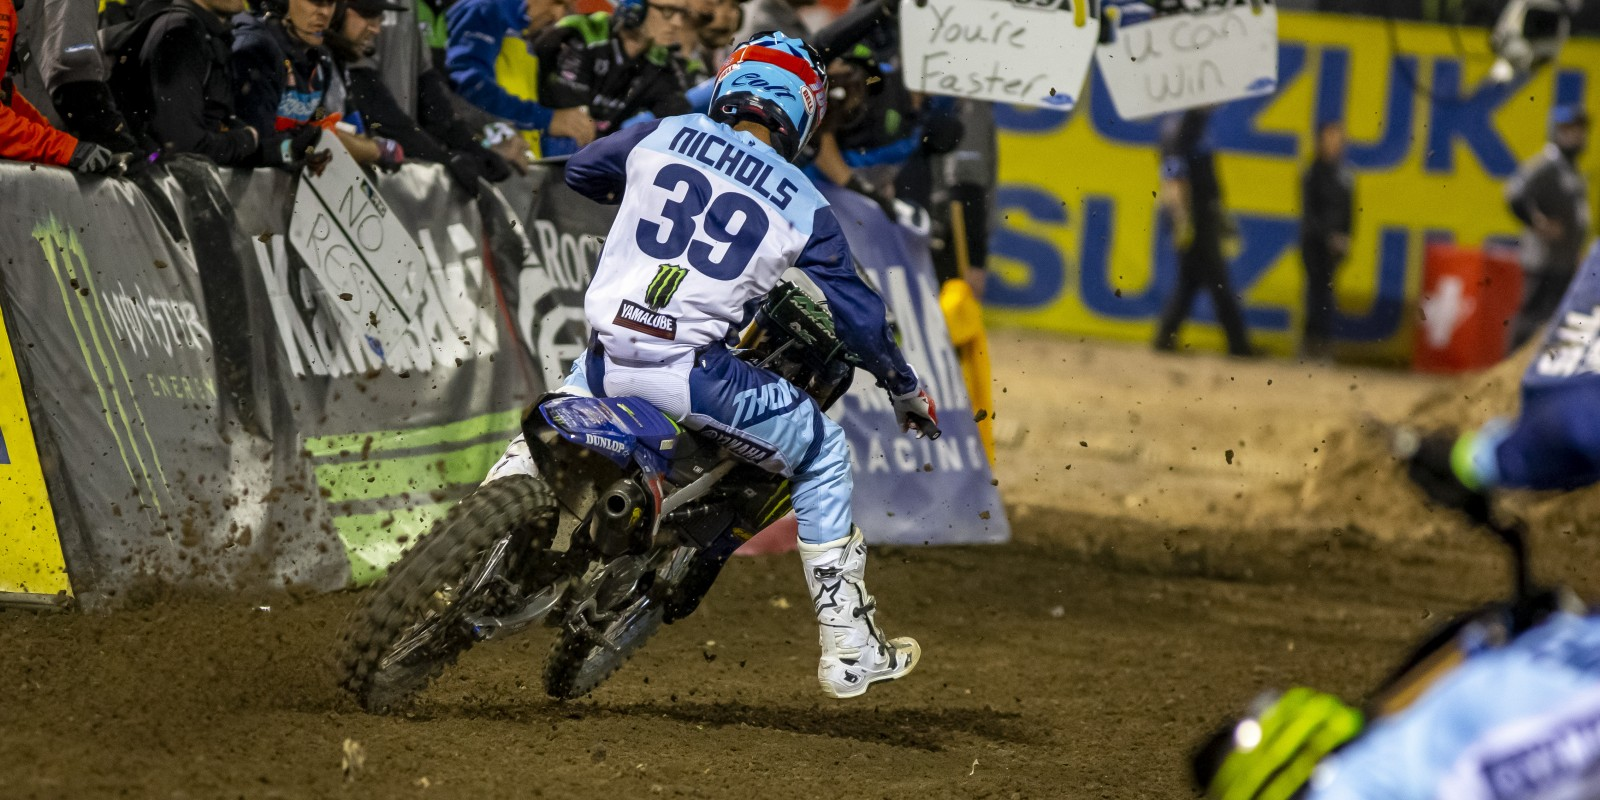 Images from the 2019 Supercross Race in Oakland, California